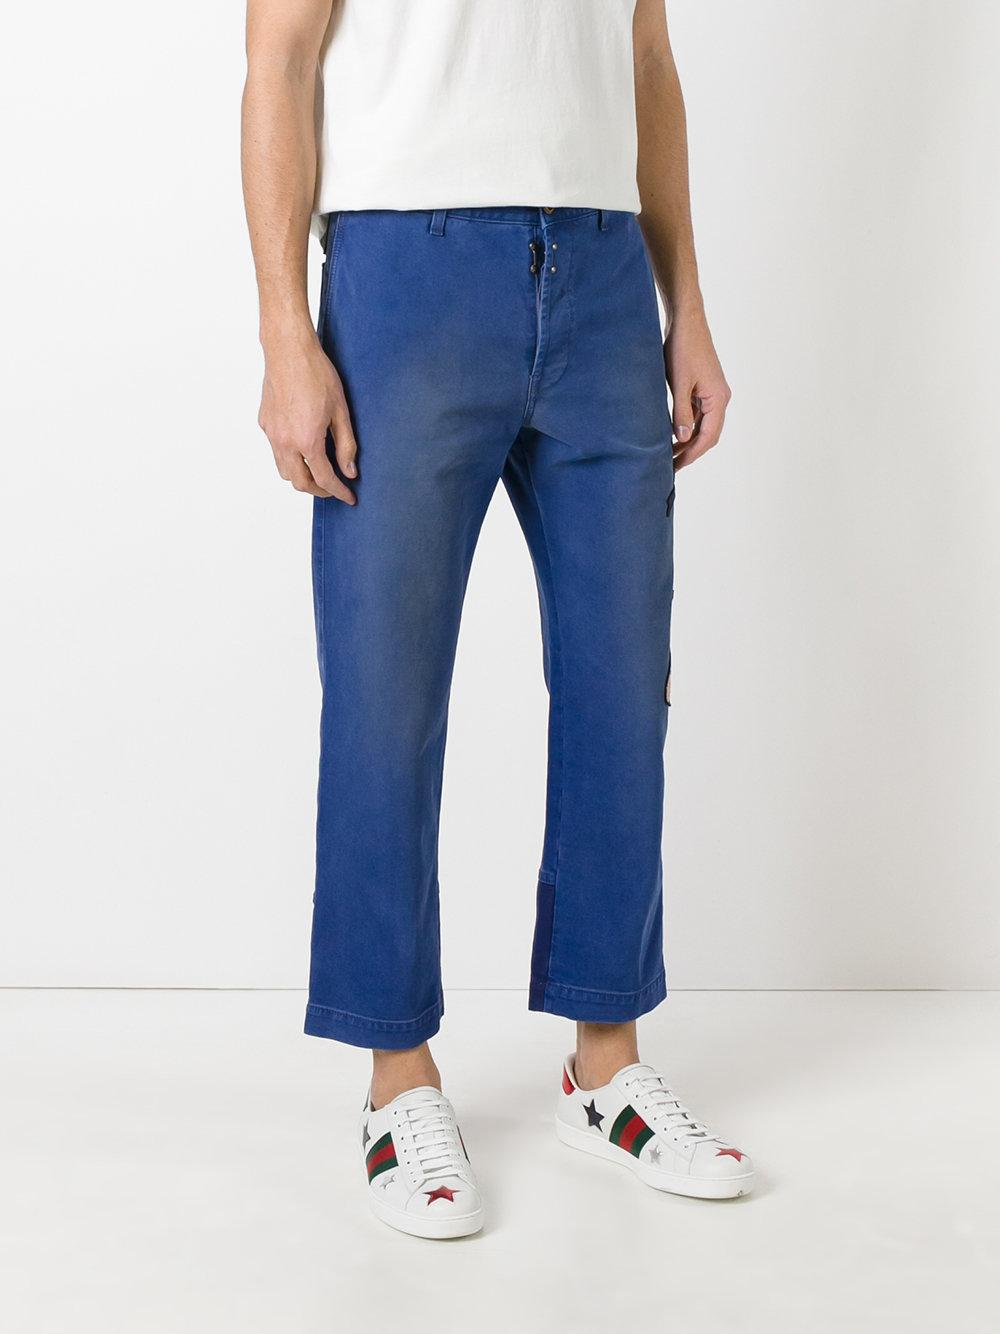 Gucci Donald Duck Embroidered Jeans in Blue for Men